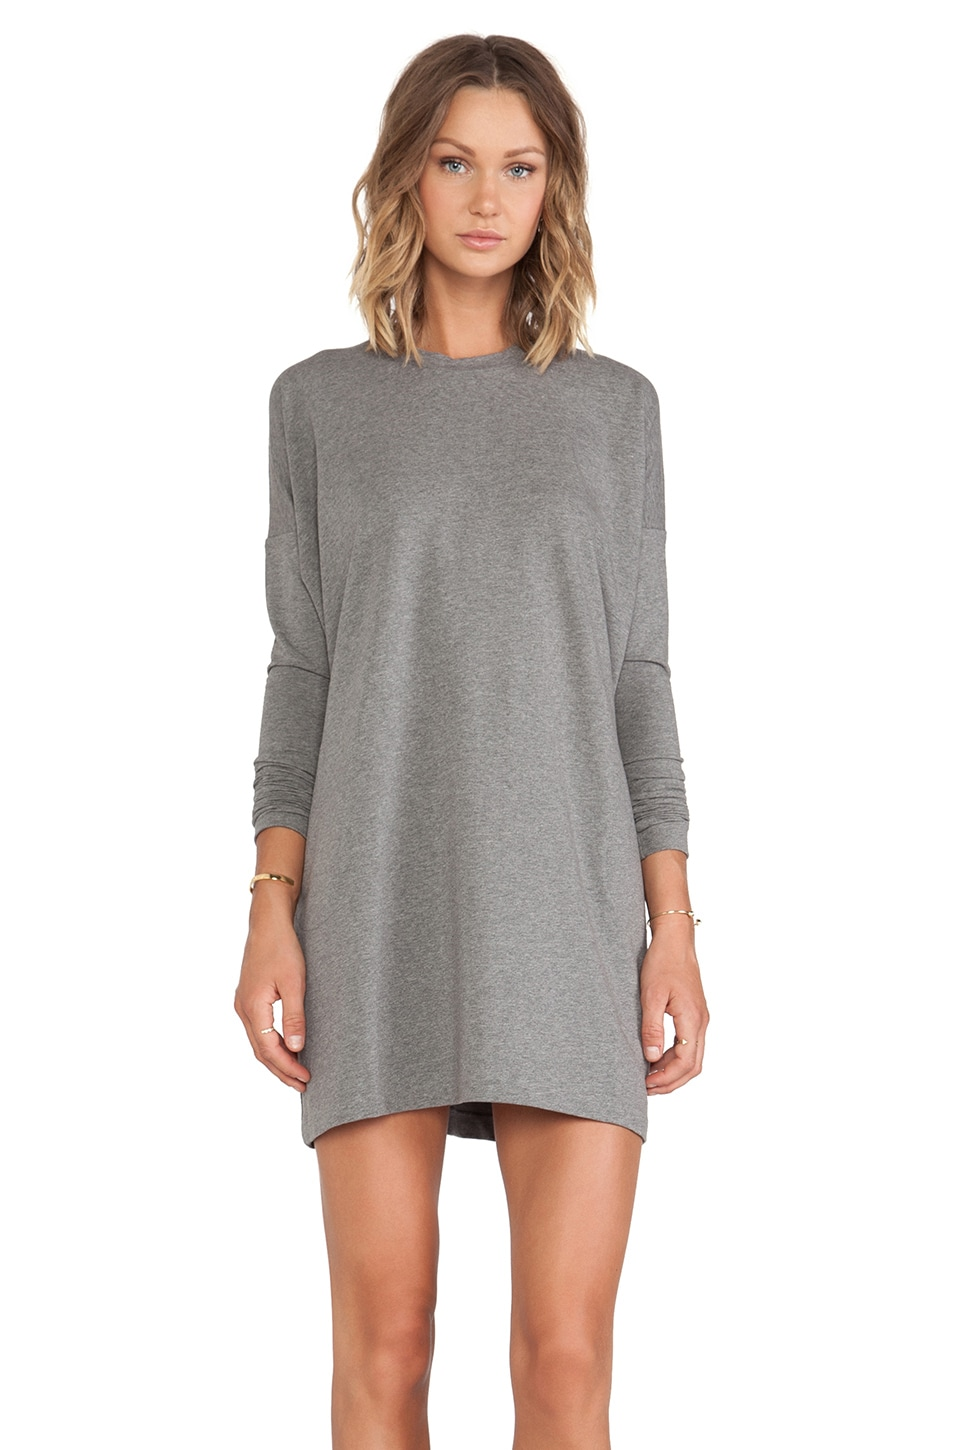 Norma Kamali Crew Neck Tunic Dress in Dark Grey